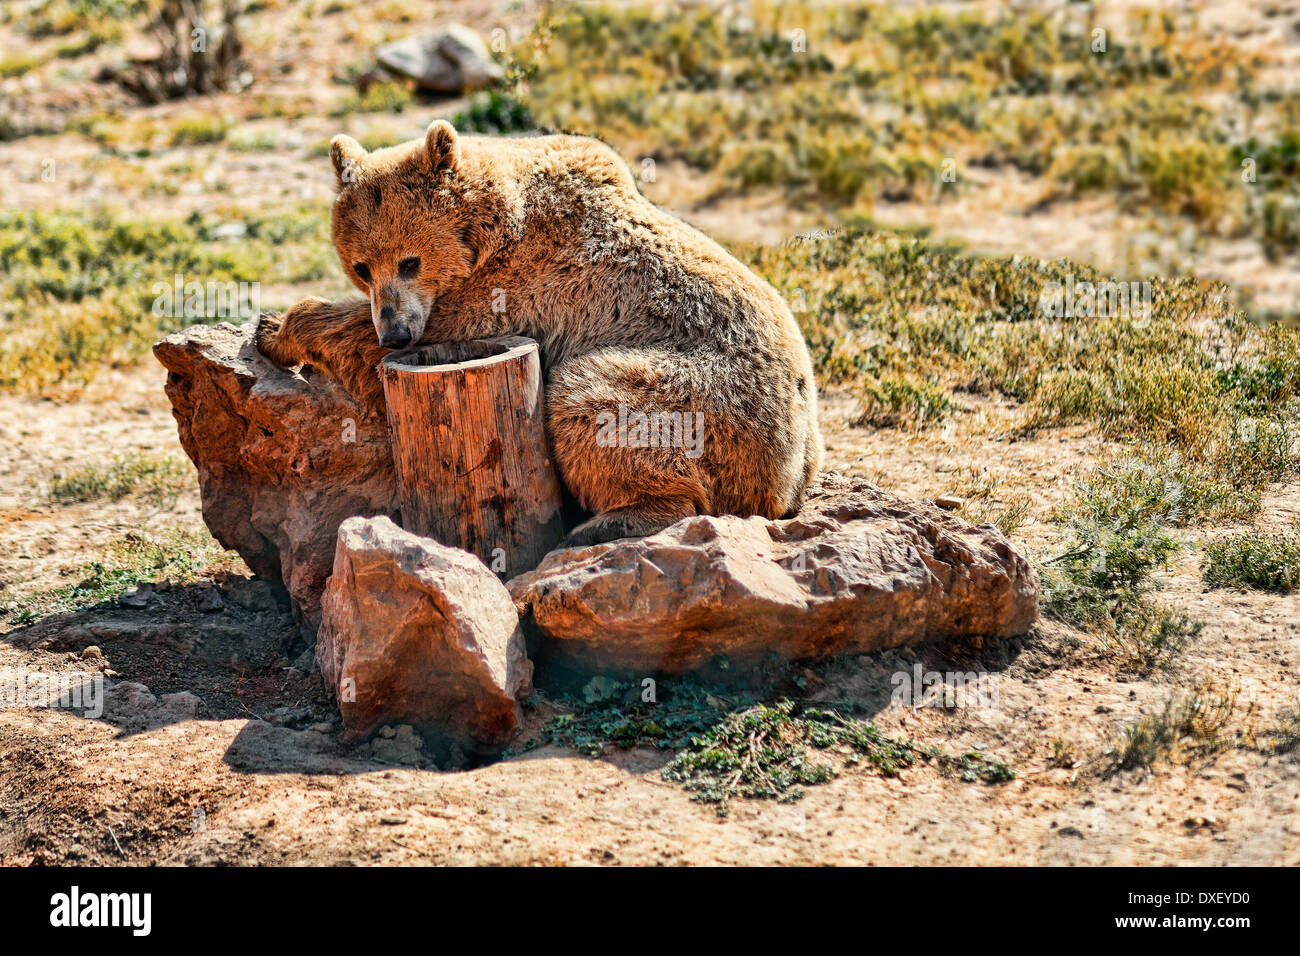 Bear in the zoo - Stock Image